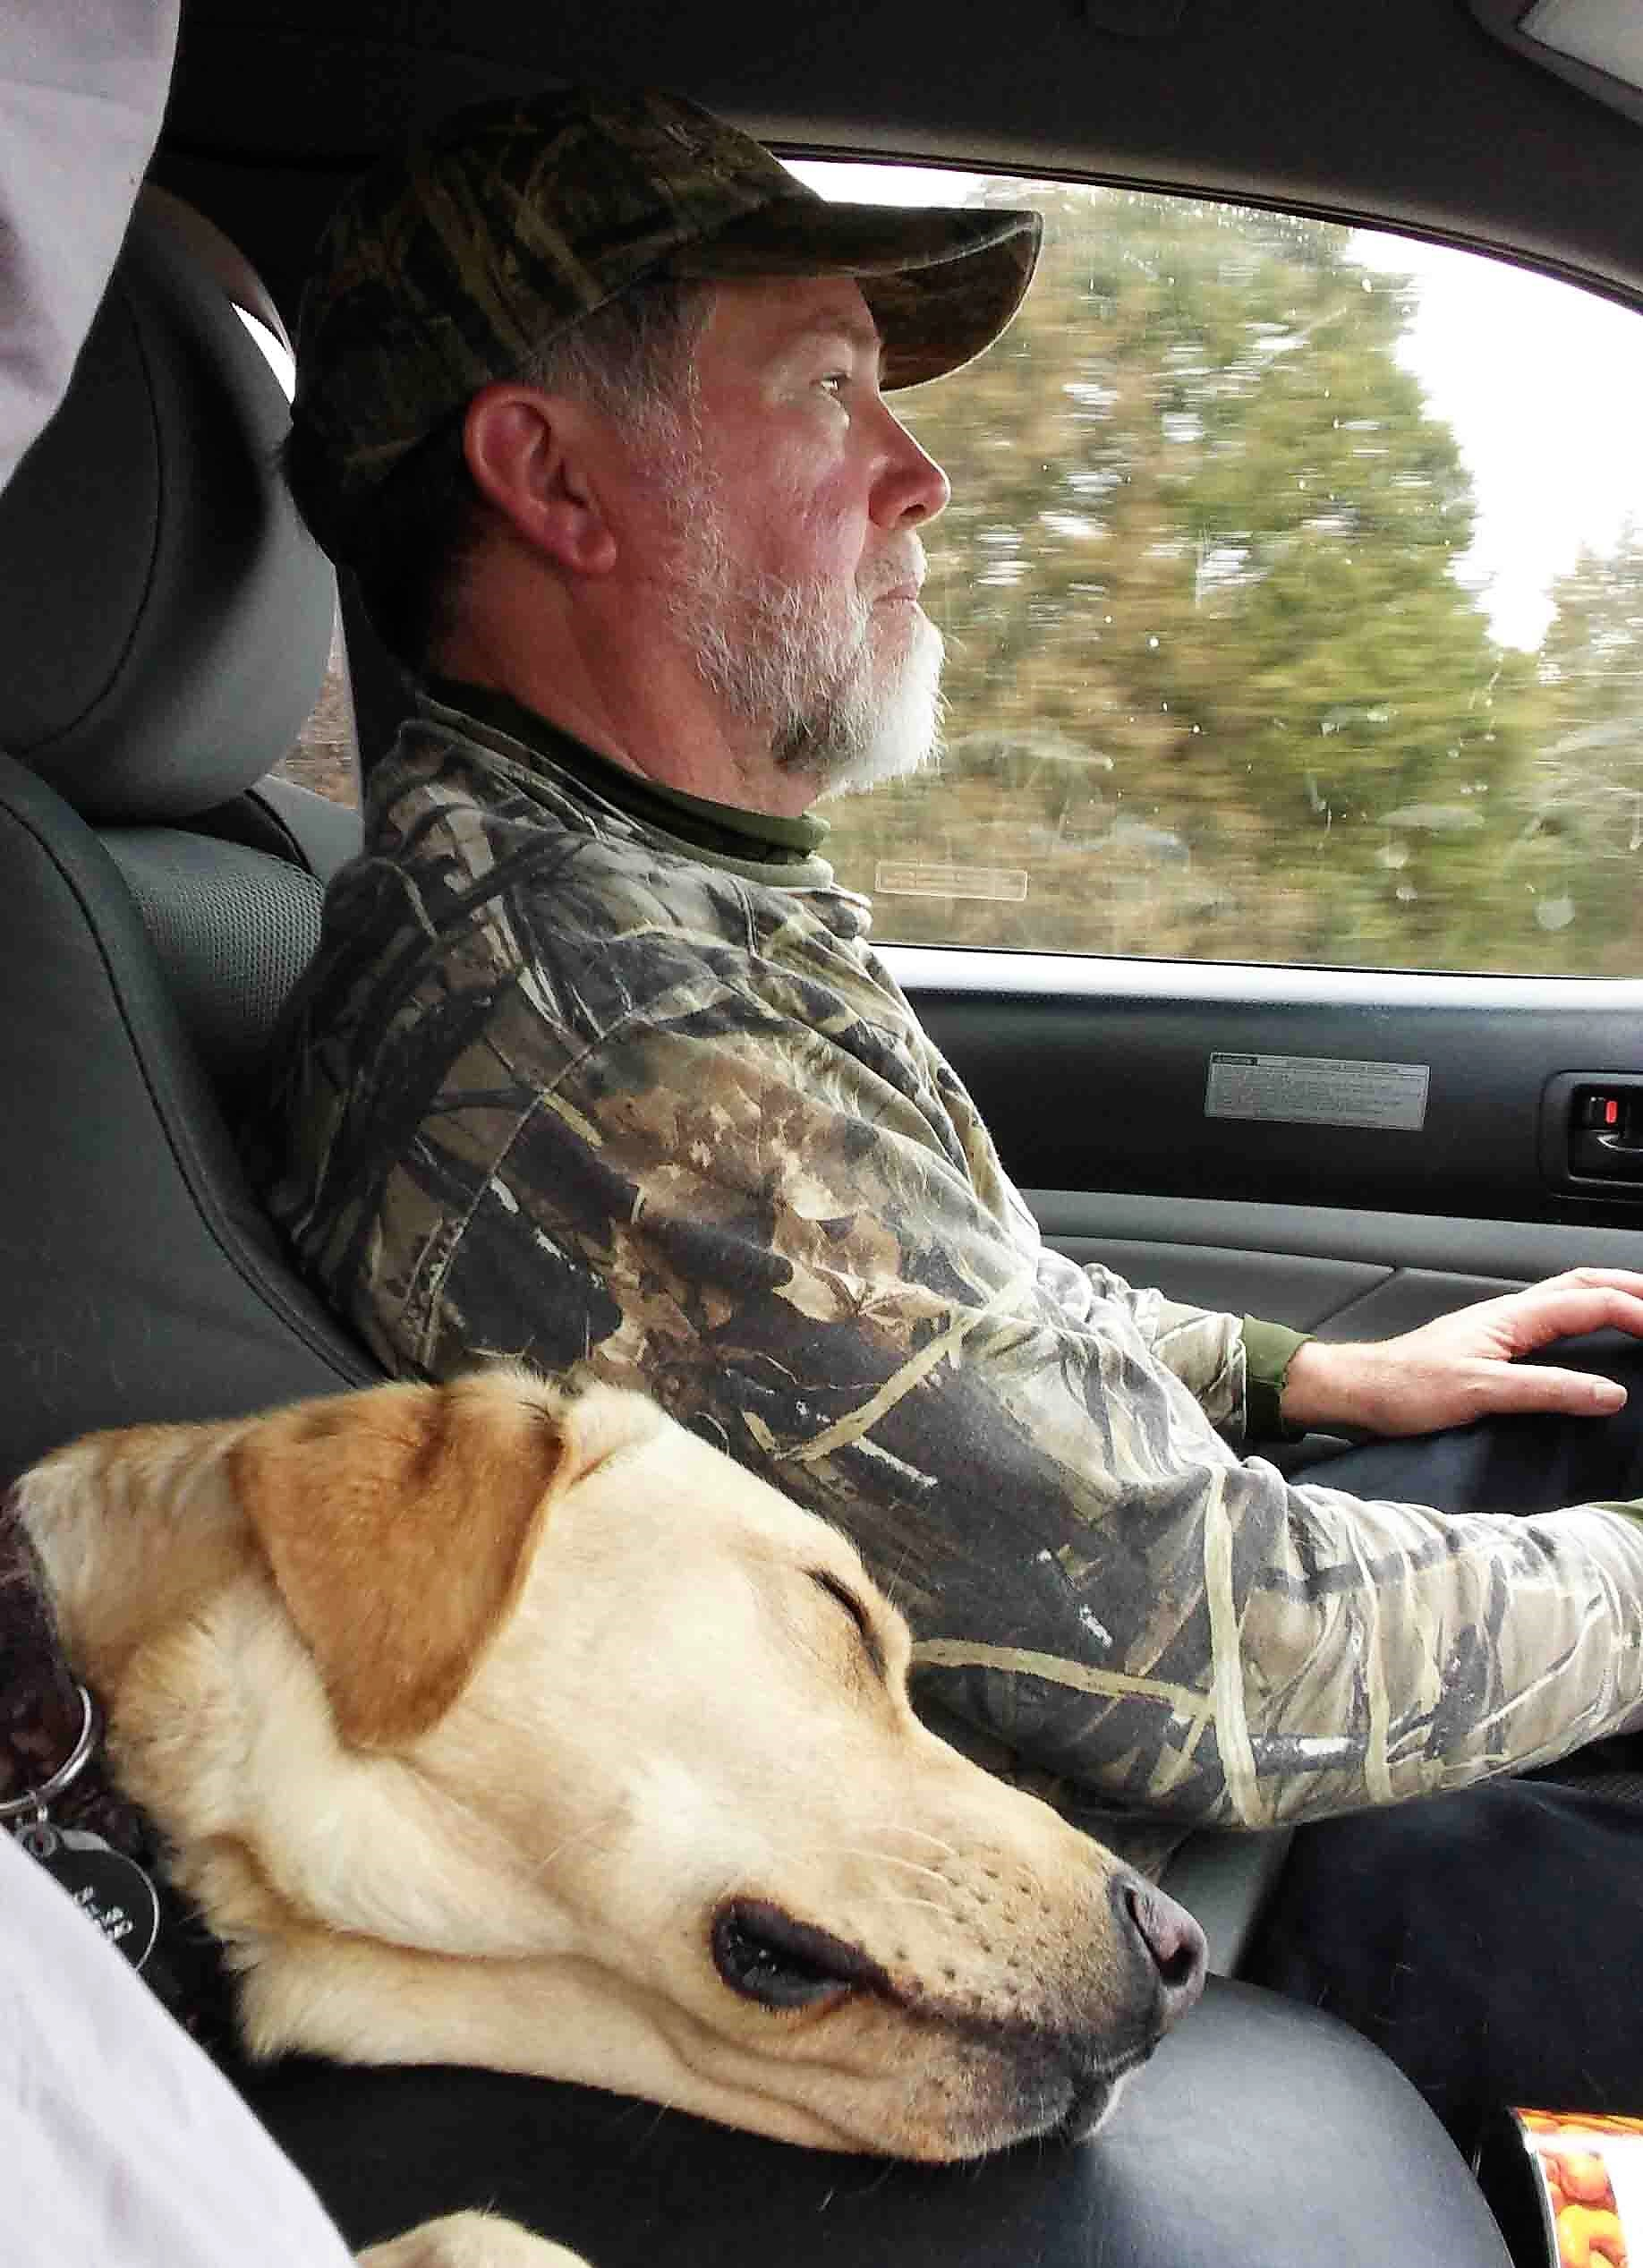 Bill's dog Hector had a great time retrieving sticks while we worked with decoys, and he slept like the dead during the drive home.